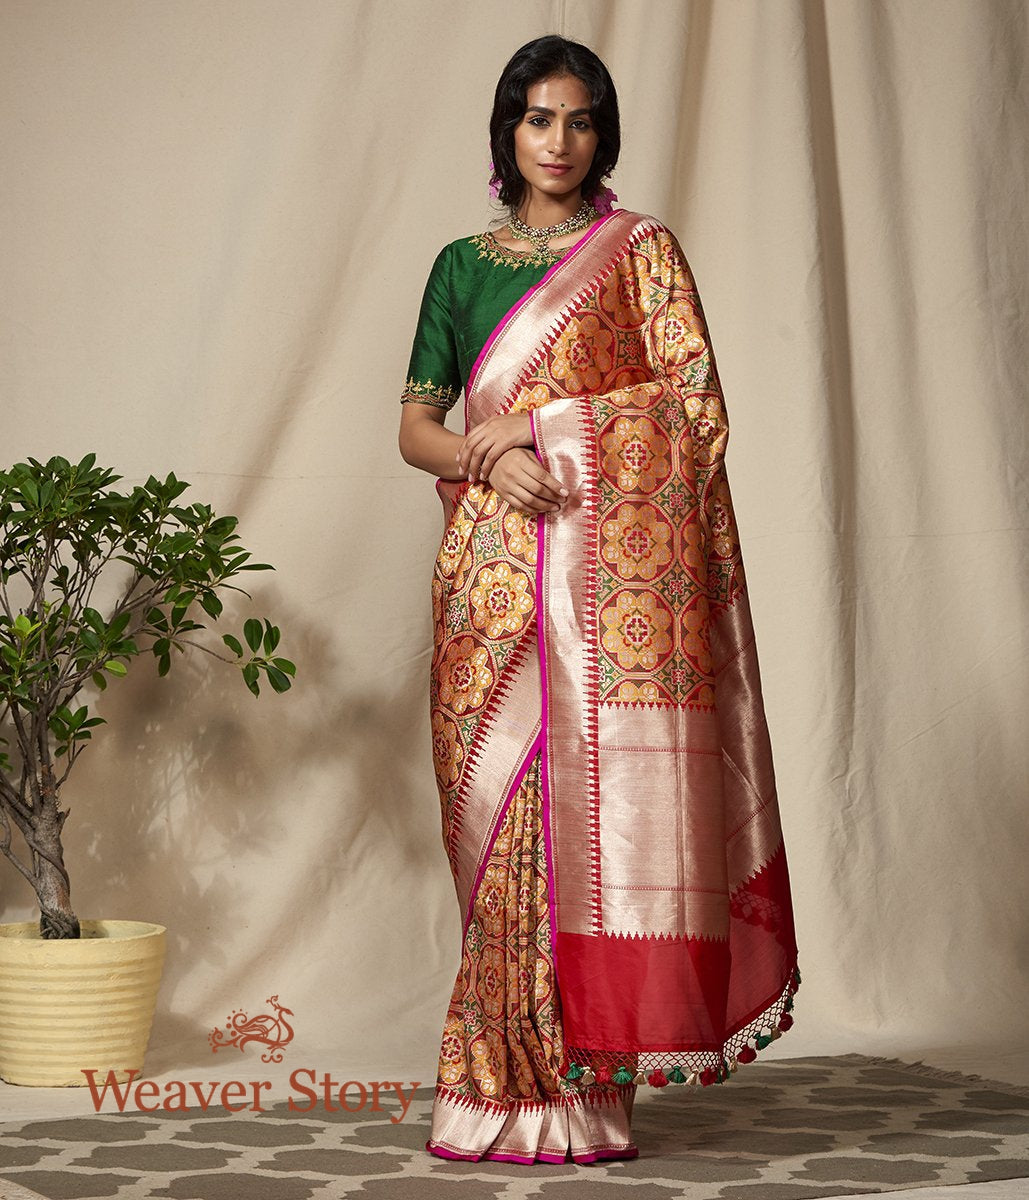 Handwoven Orange and Green Meenakari Banarasi Patola Saree